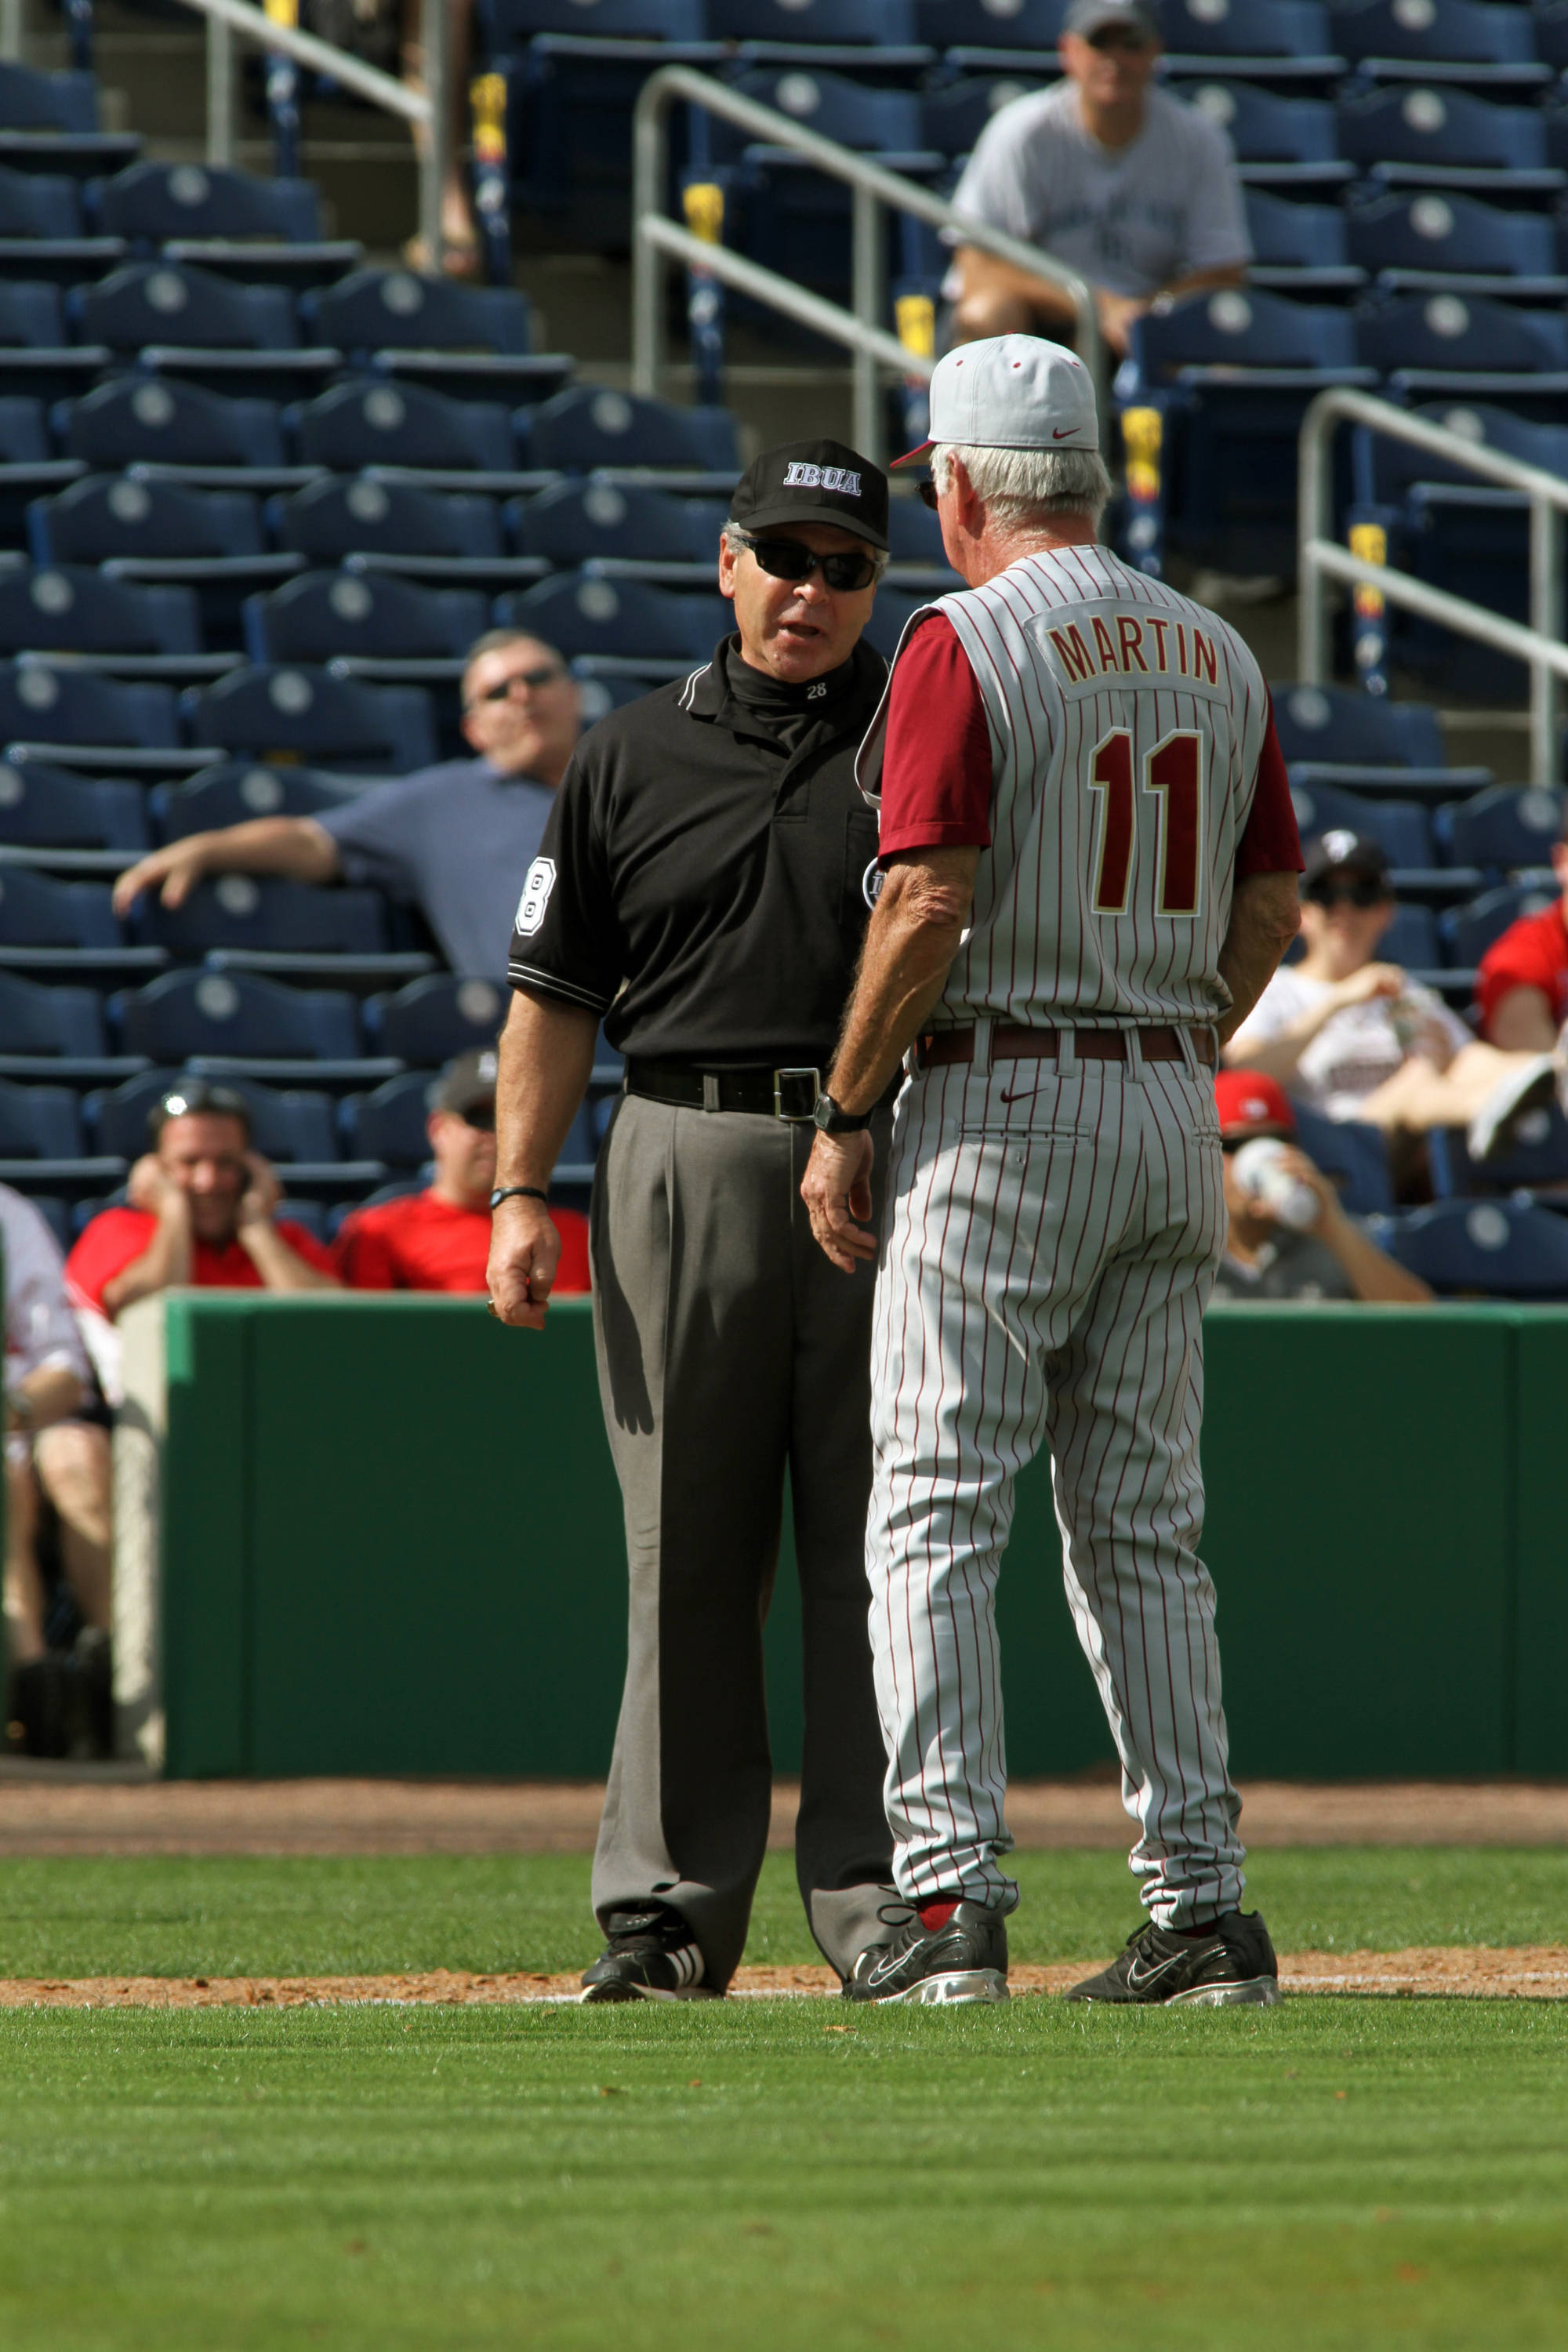 Head coach Mike Martin talks with the umpire during the game.